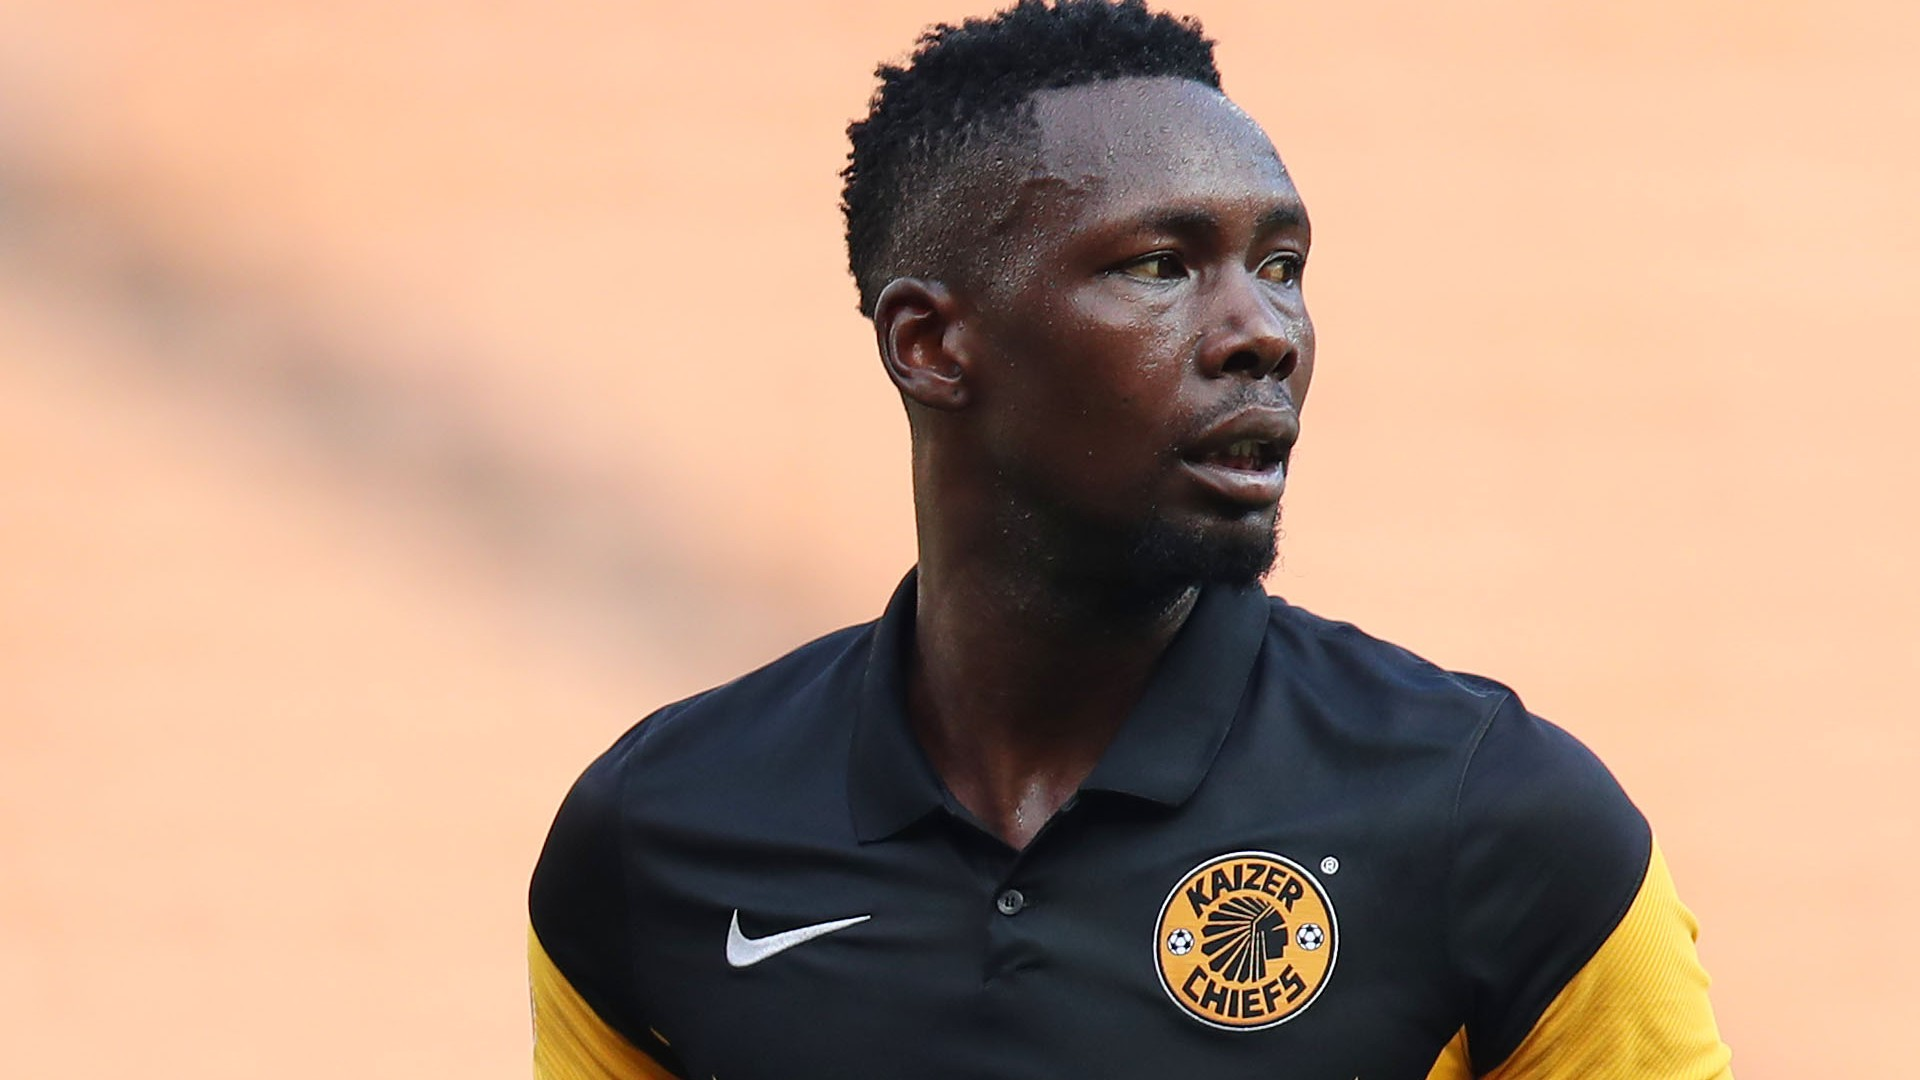 Kaizer Chiefs players ratings after embarrassing Ahly defeat: Mathoho, Mashiane disappoint